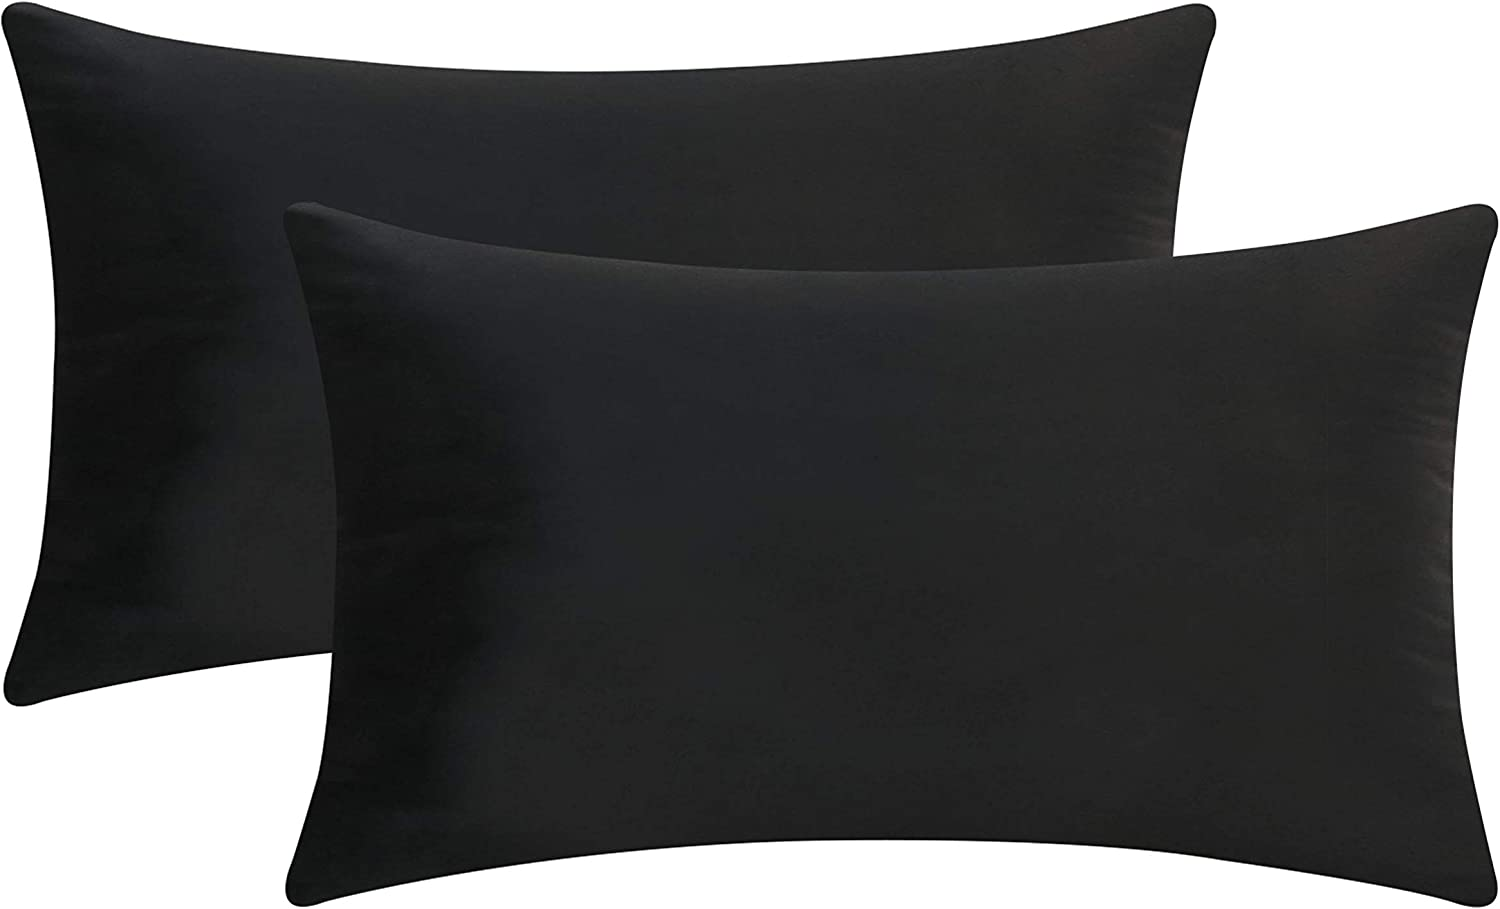 Home Brilliant Decorative Velvet Cushion Covers Accent Lumbar Pillow Covers for Car Toddler Neck Pain, Set of 2, 12x20 (30x50cm), Black